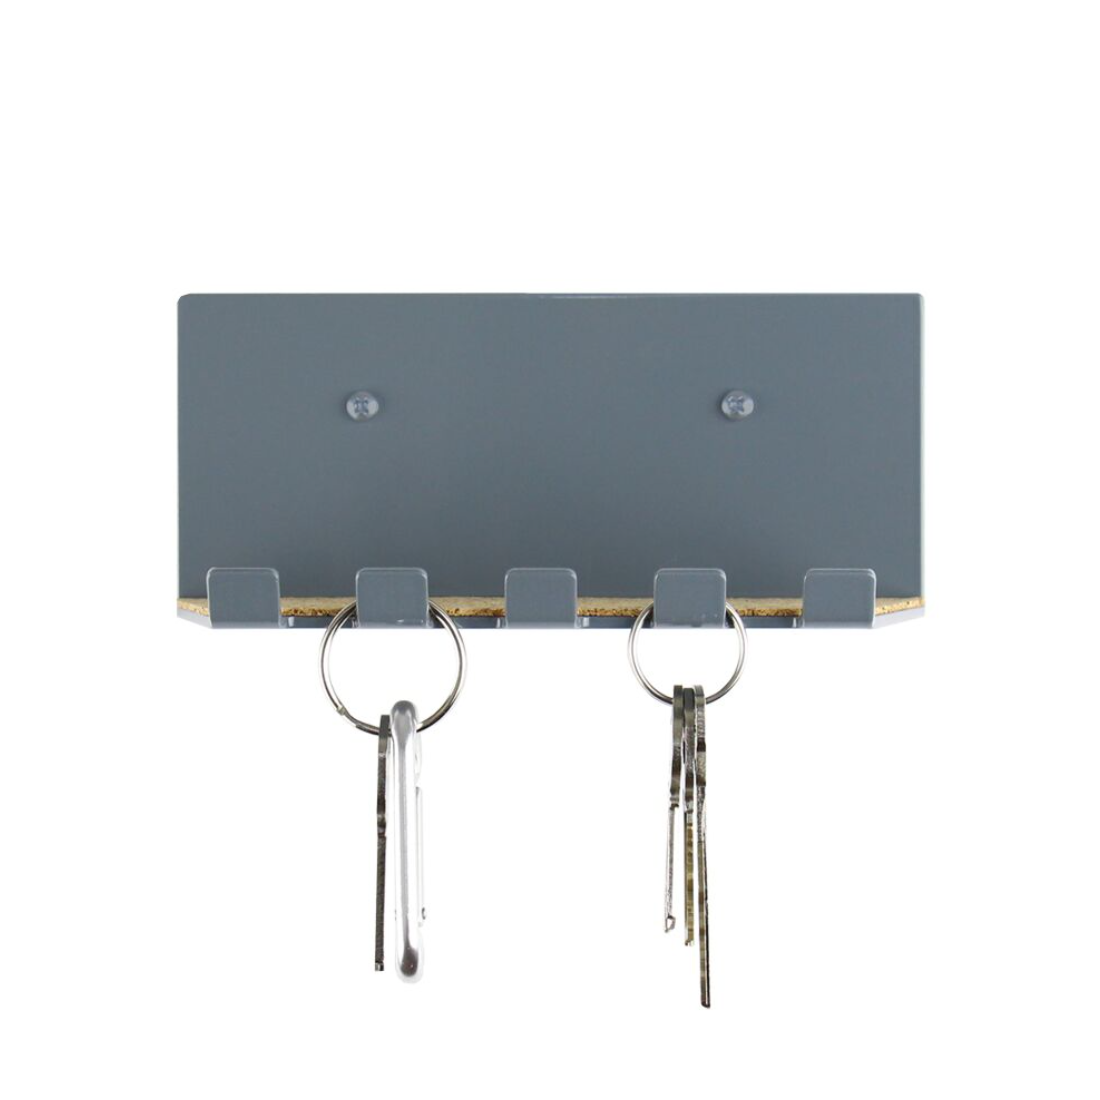 Merkled Key Shelf